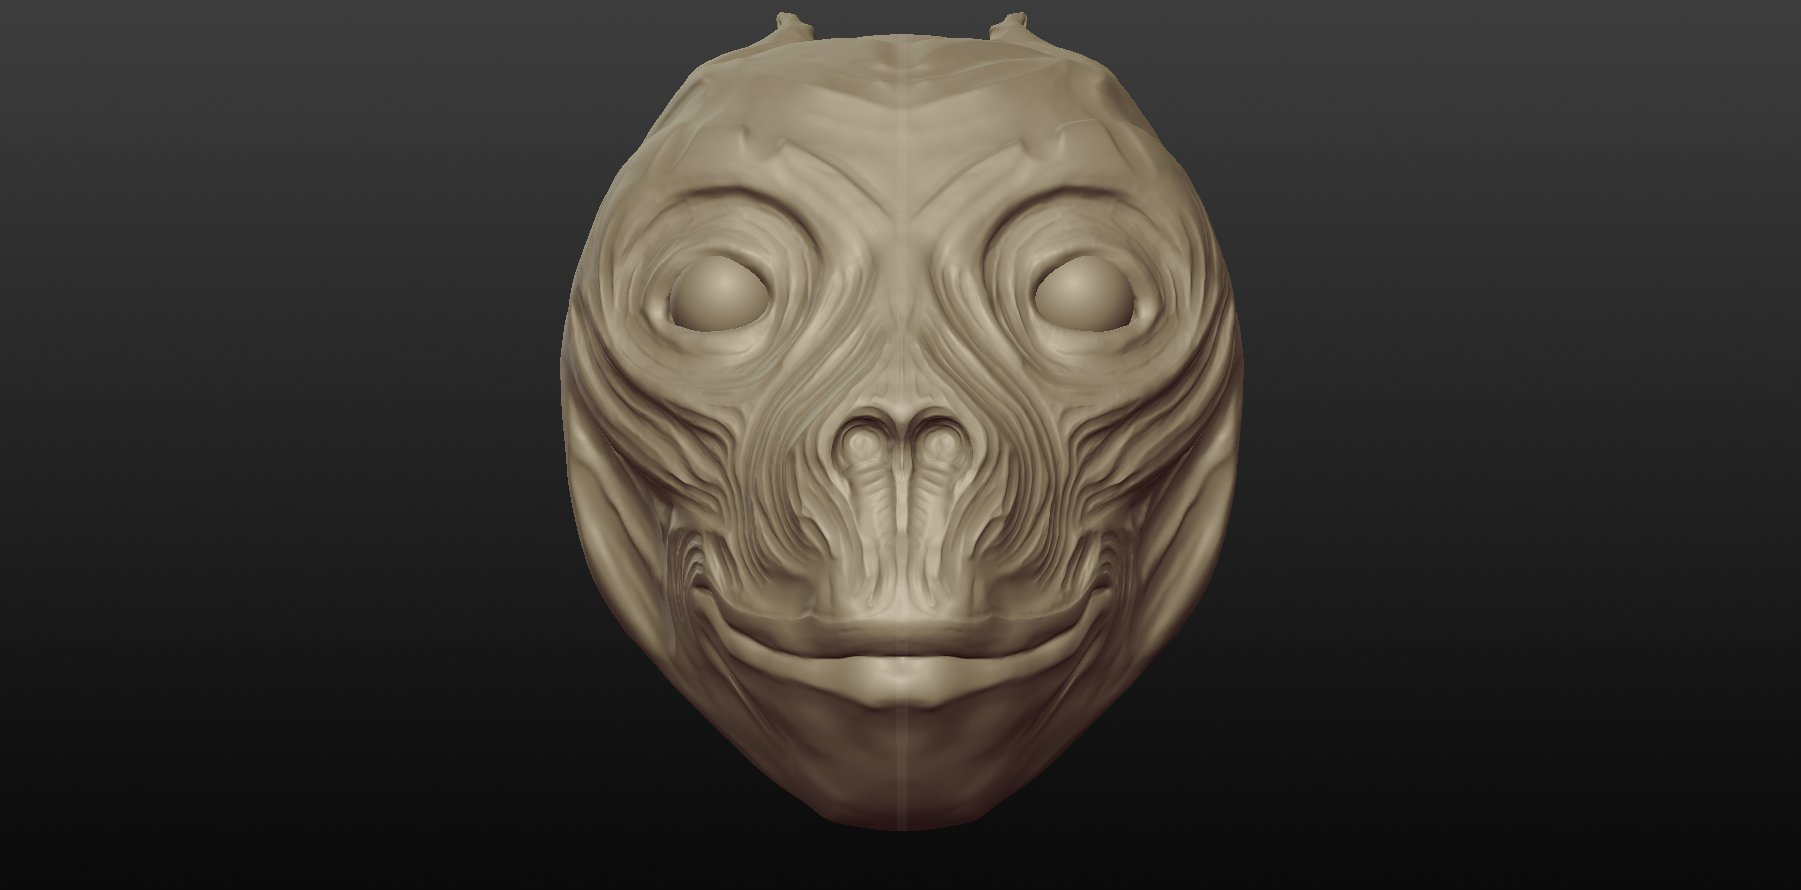 Dorde pinter creature thing front